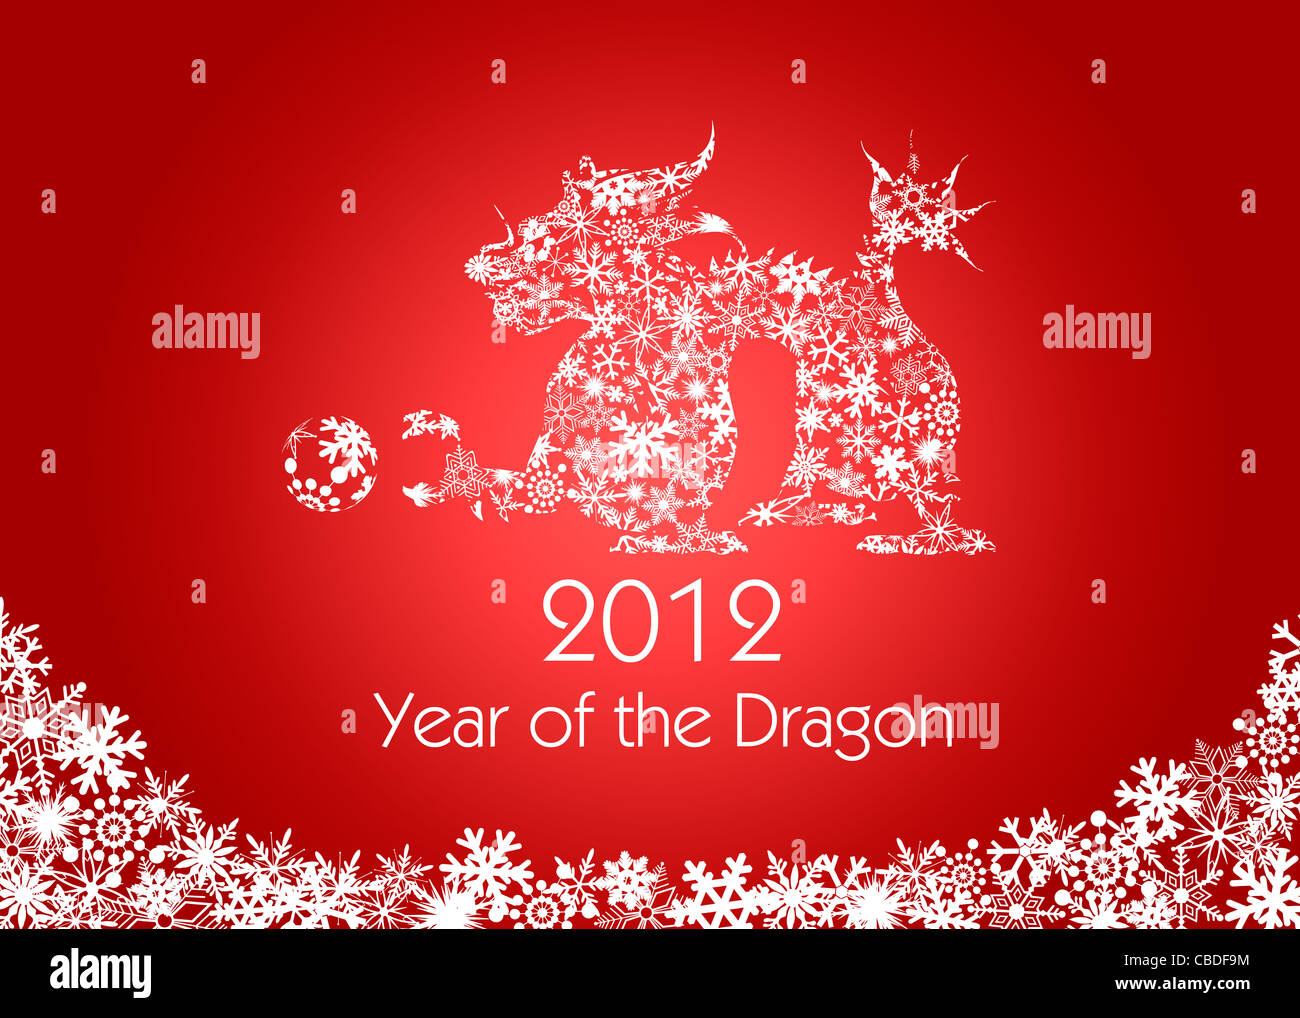 2012 Chinese New Year Dragon with Snowflakes Pattern on Red Background - Stock Image